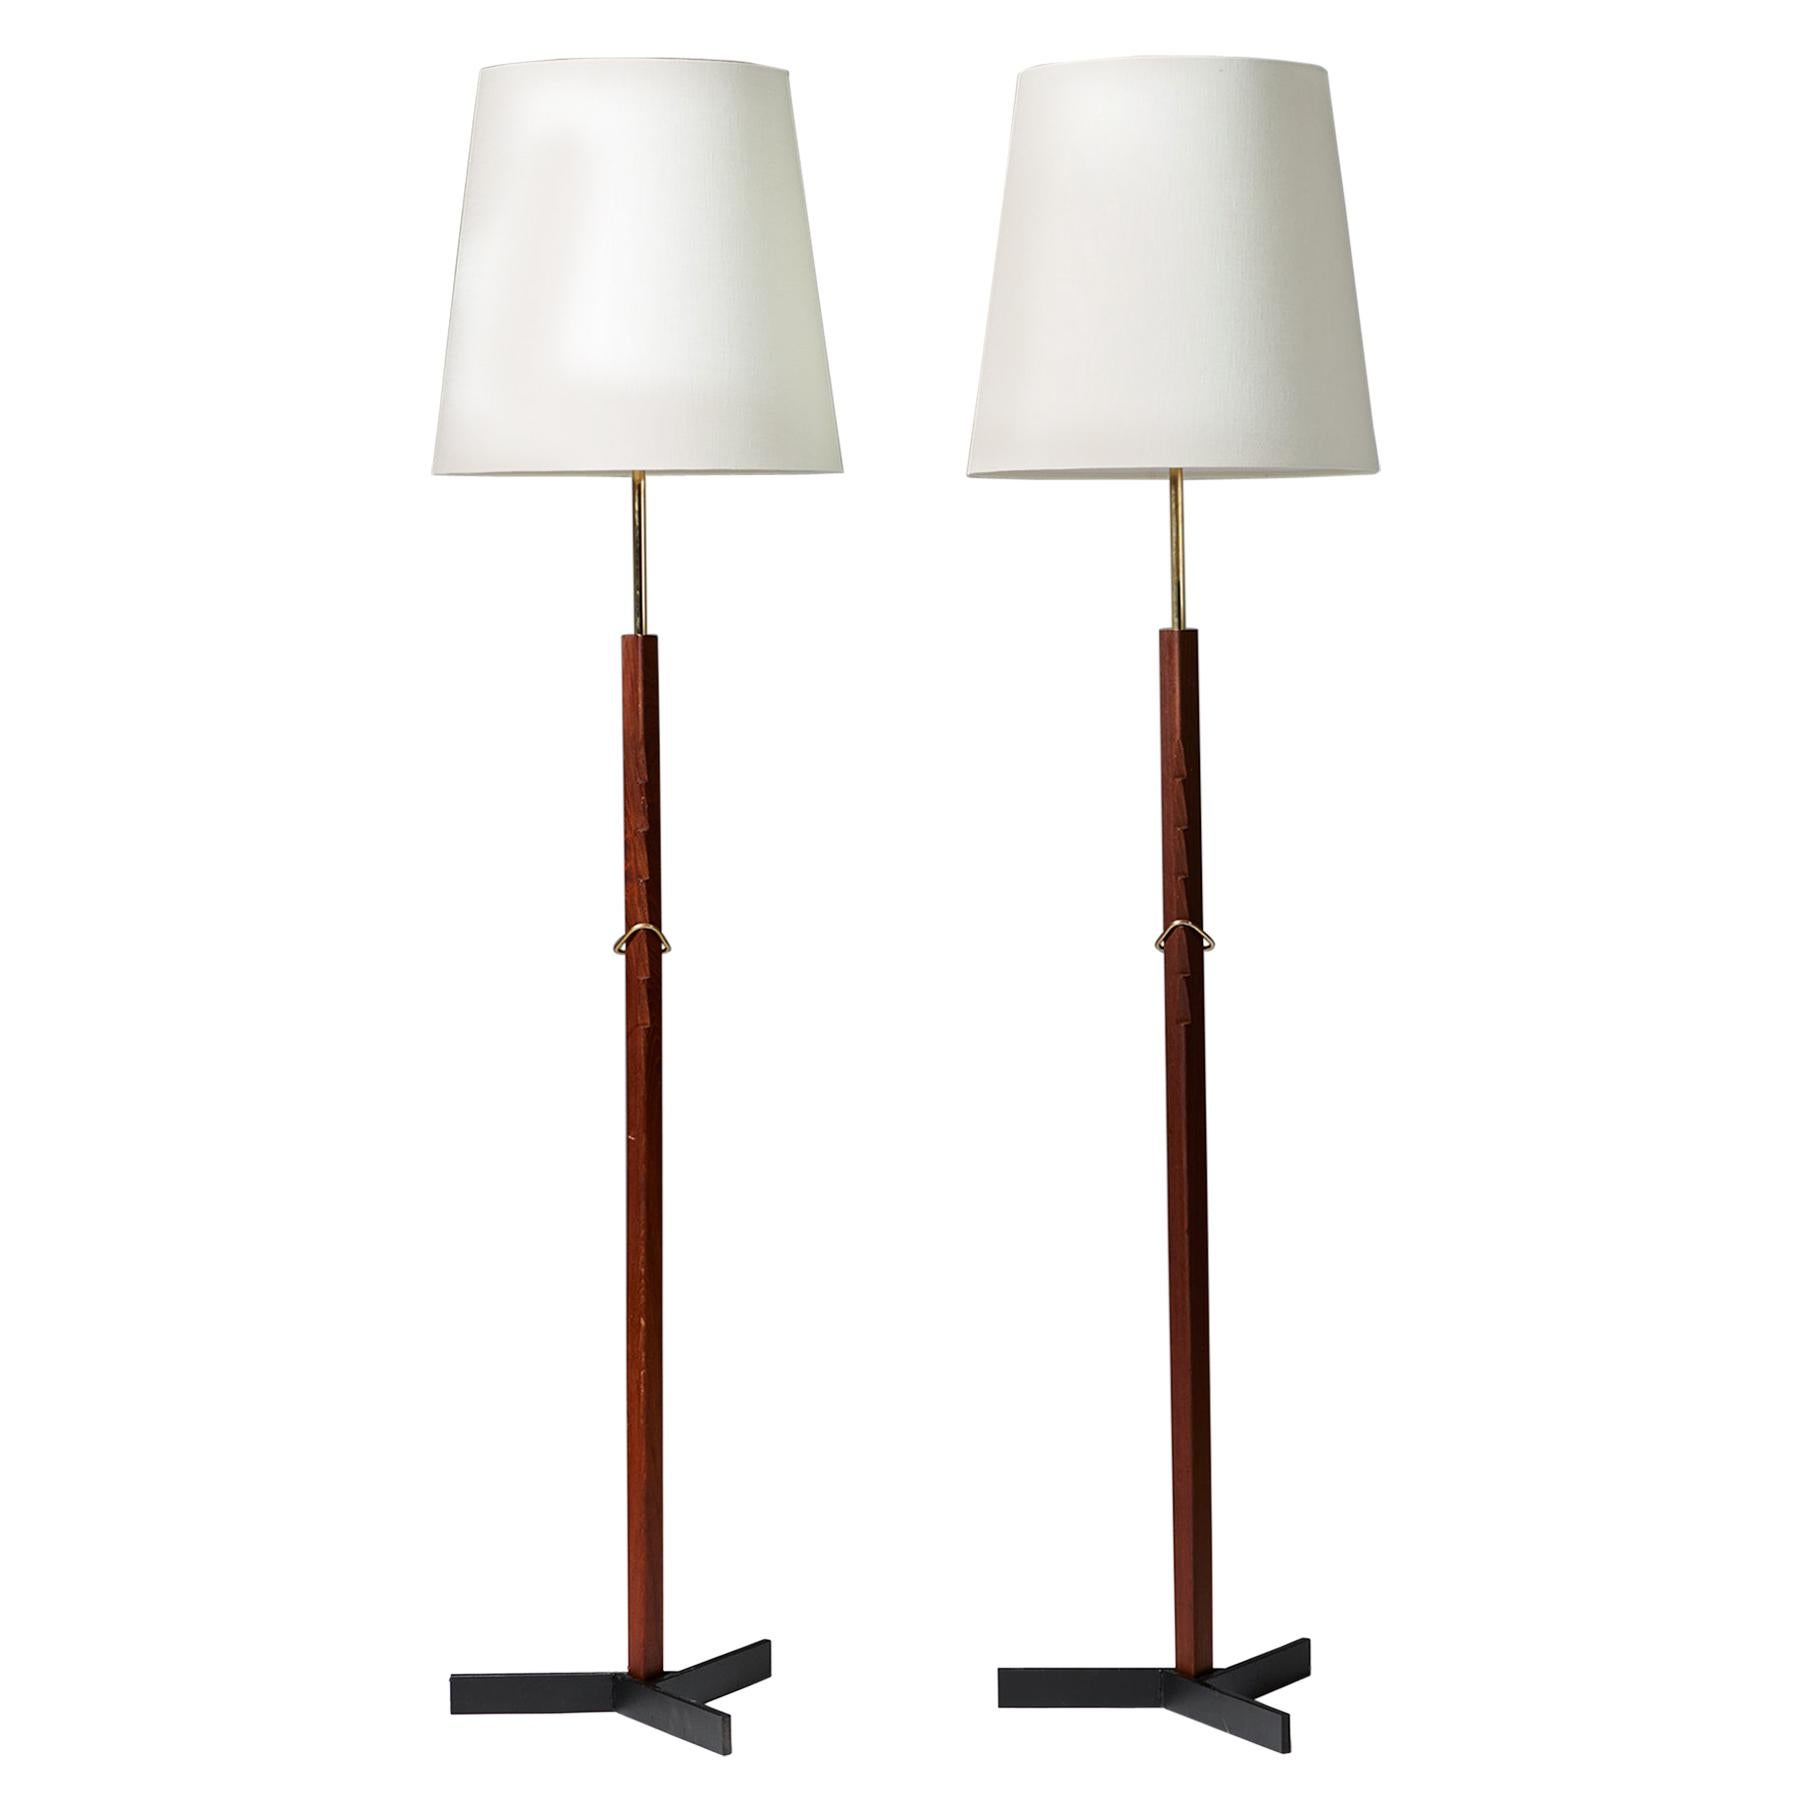 Pair of Floor Lamps, Anonymous, 1960s